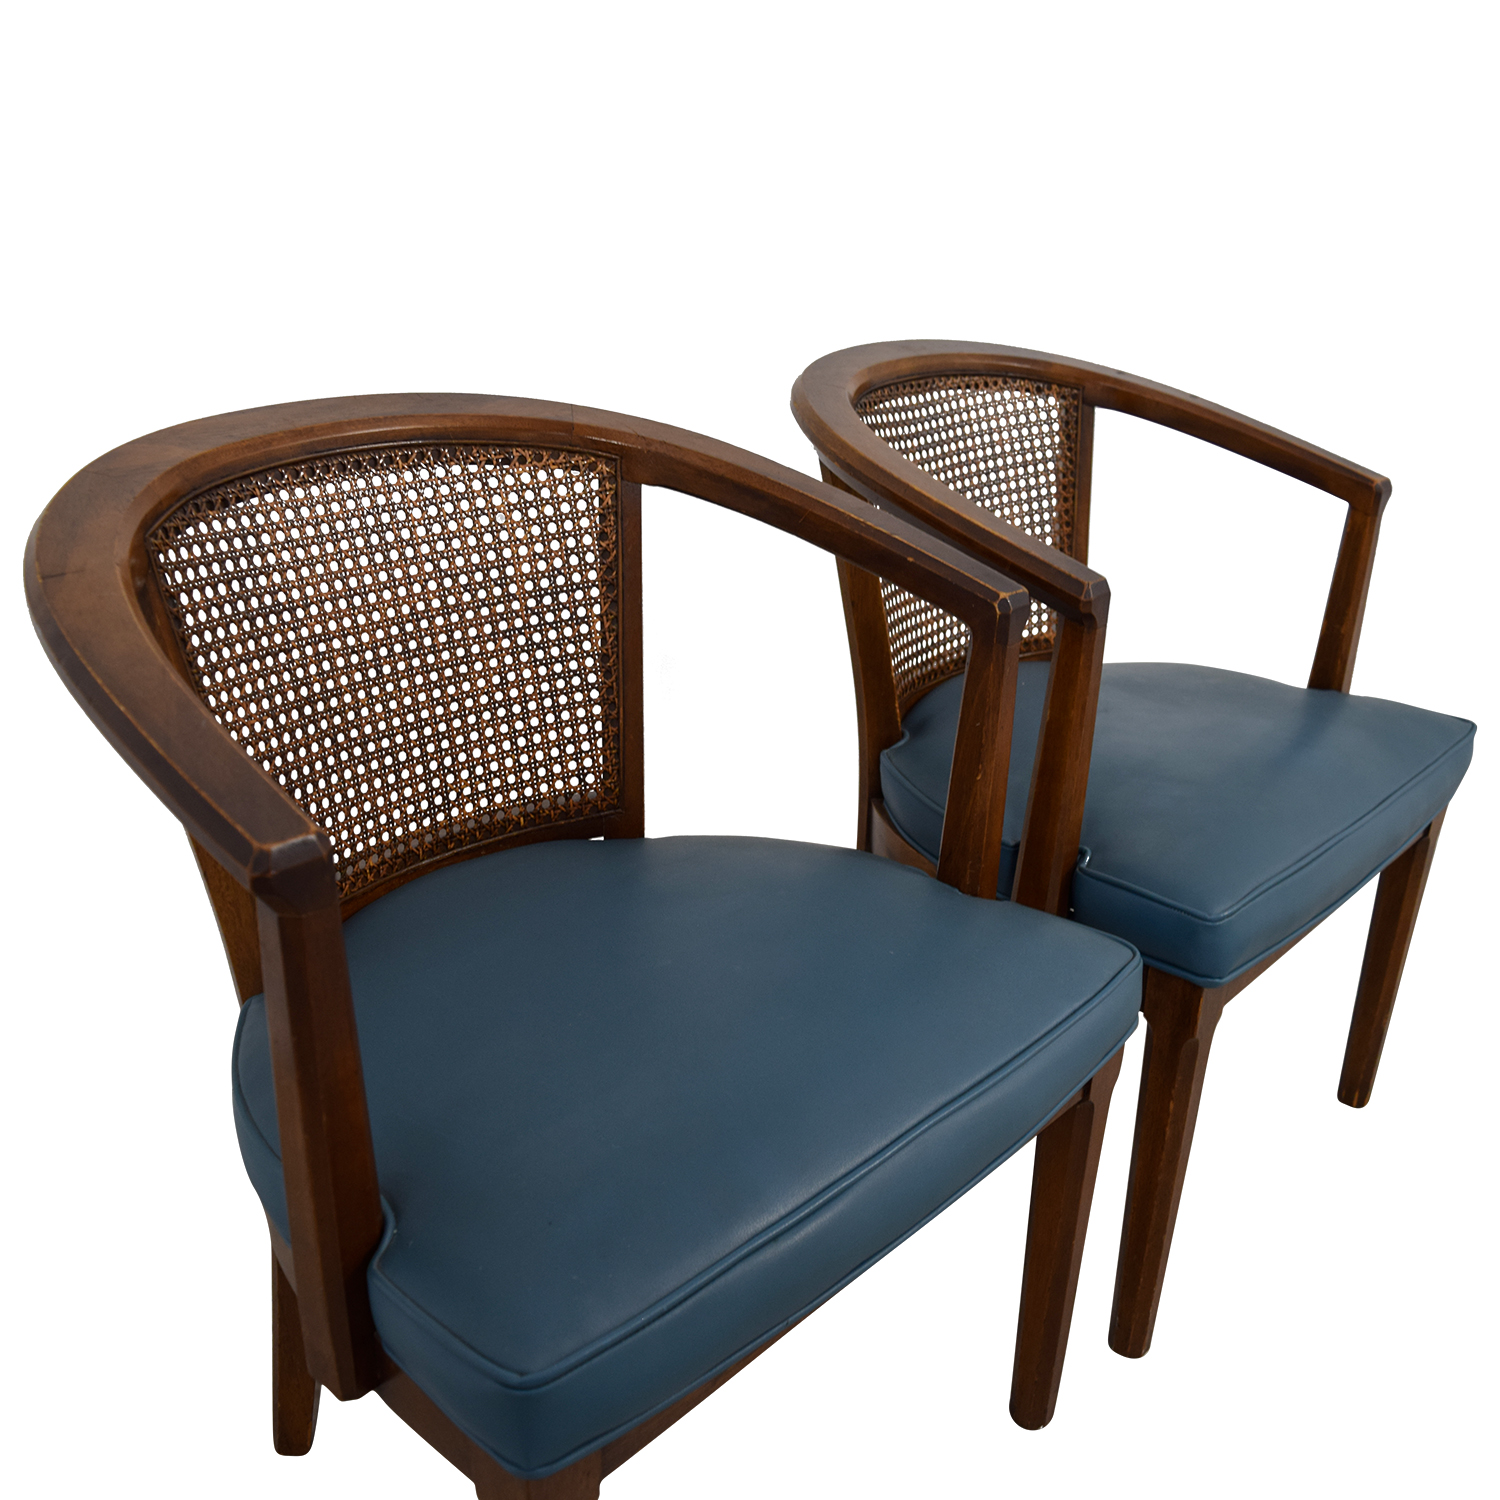 76 Off Vintage Mid Century Cane Navy Barrel Chair Chairs